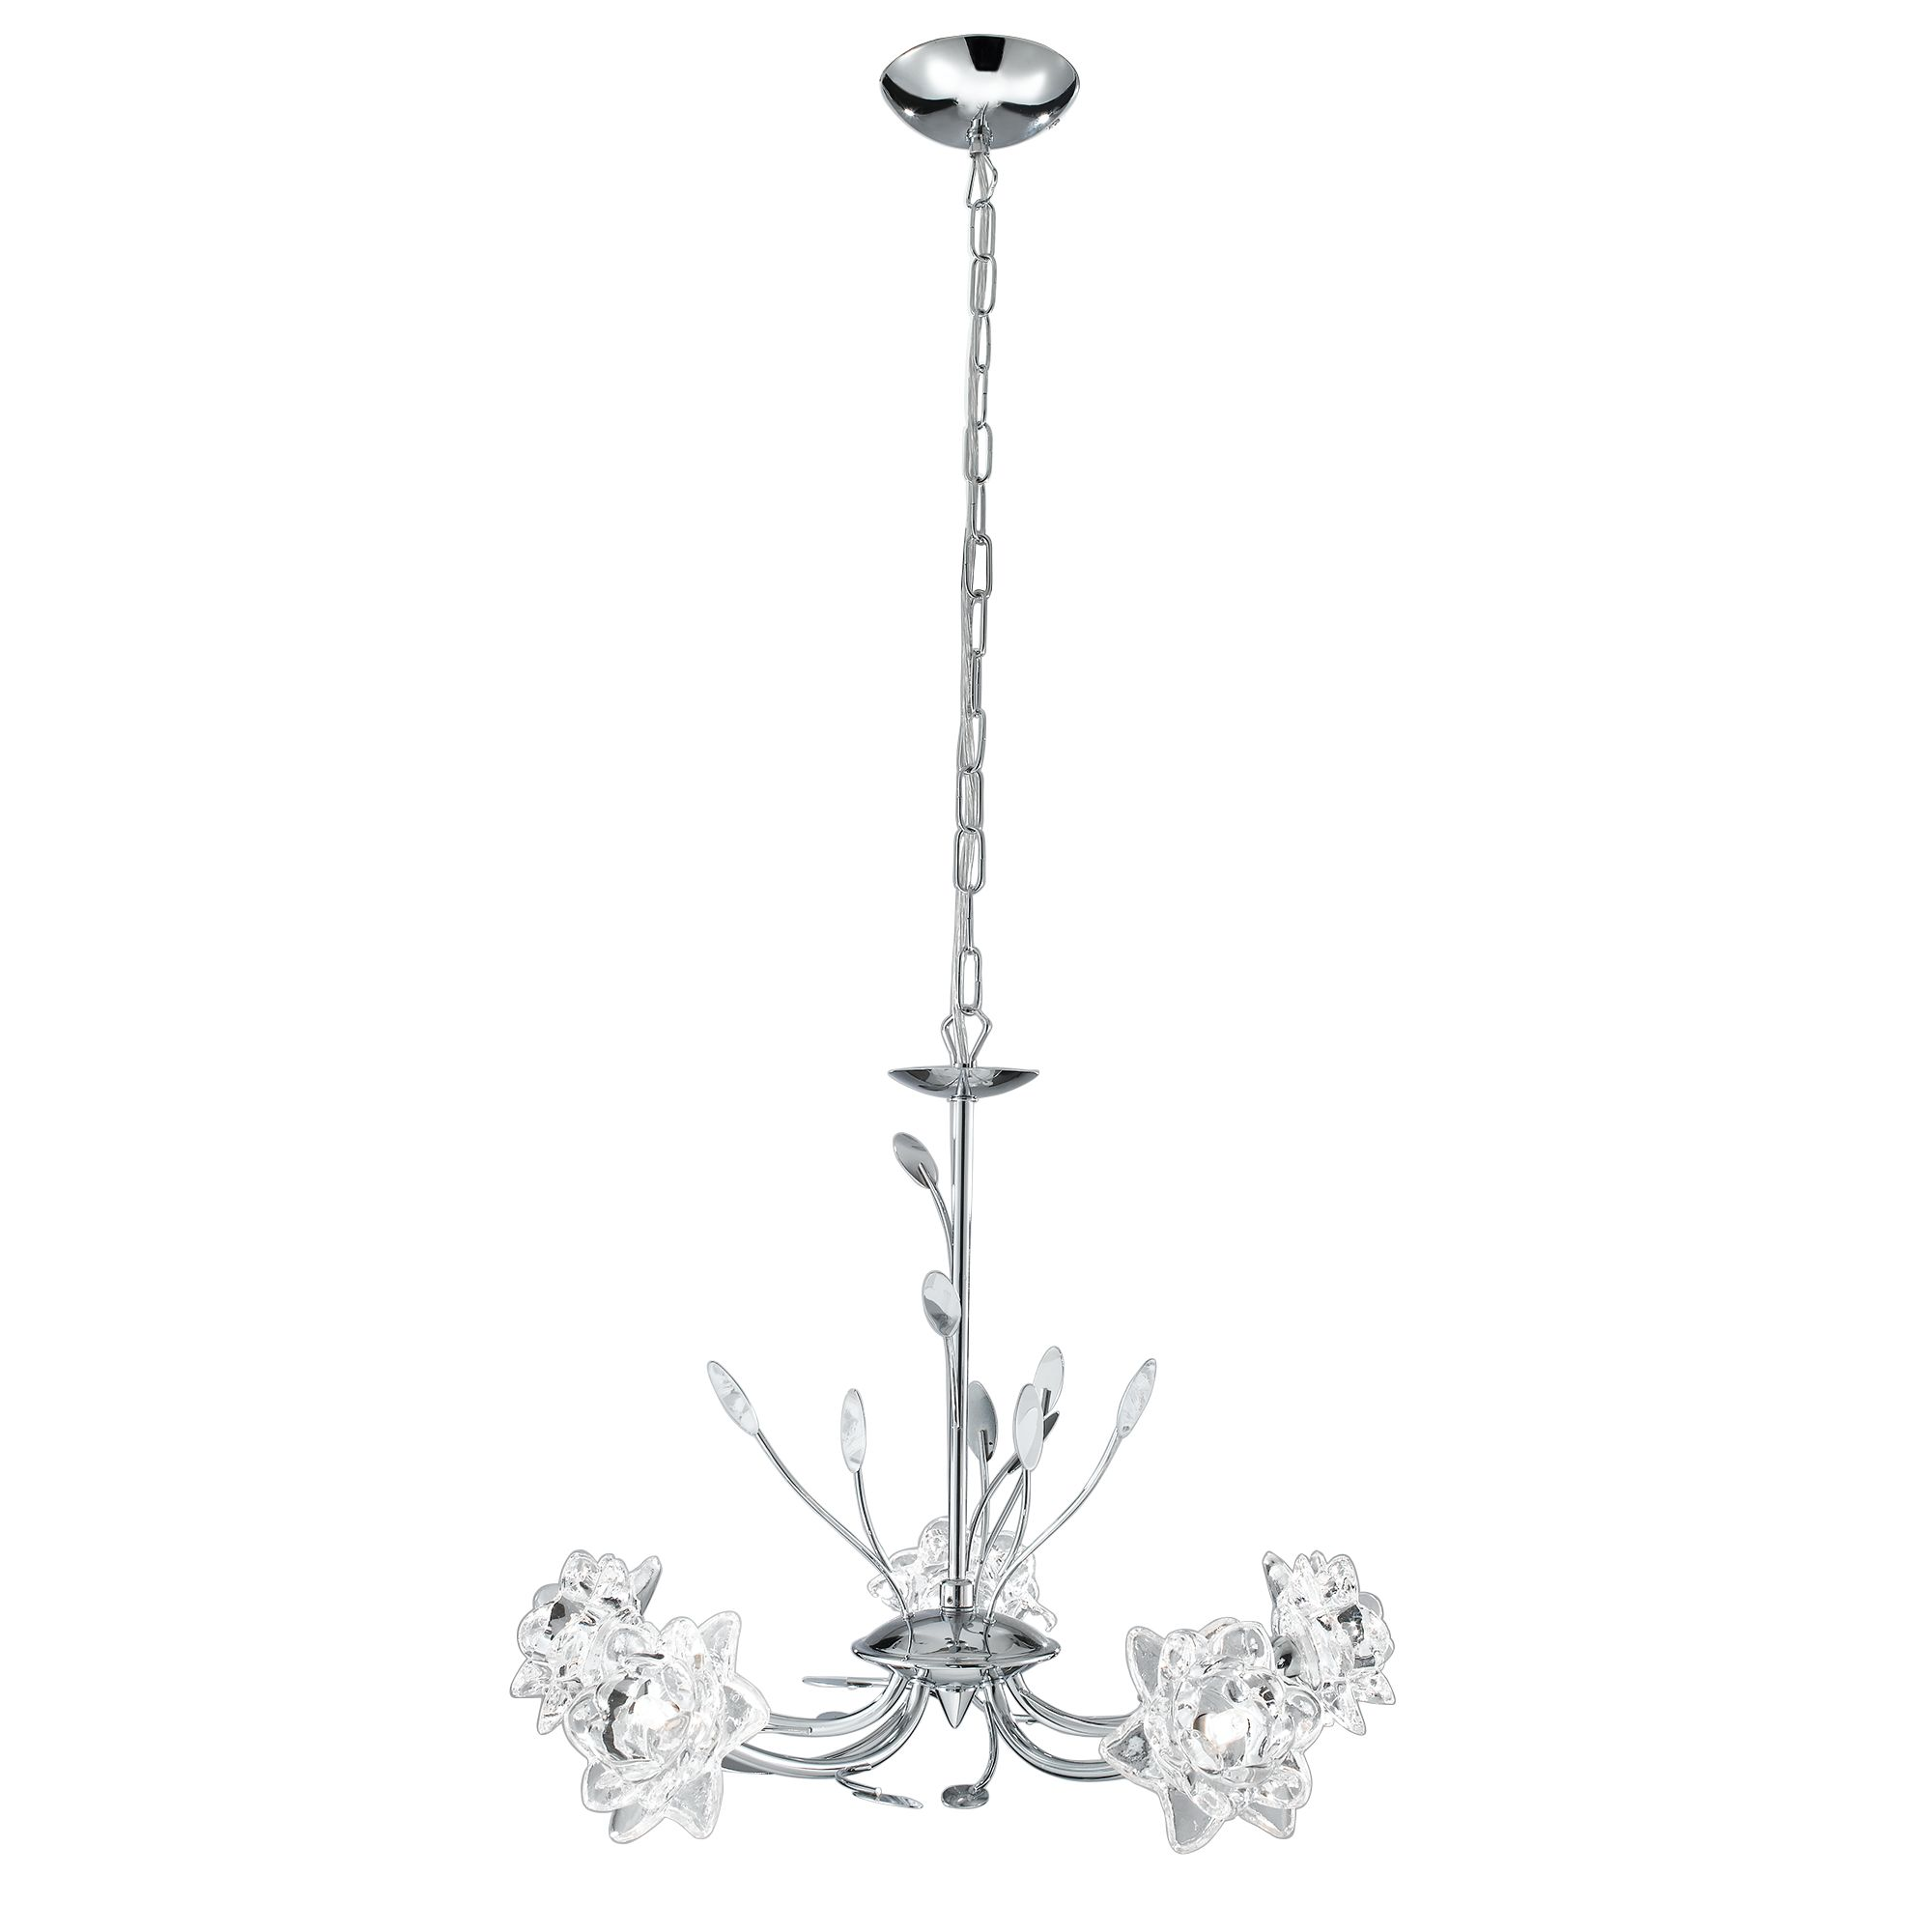 Bellis Chrome 5 Light Fitting With Clear Flower Glass